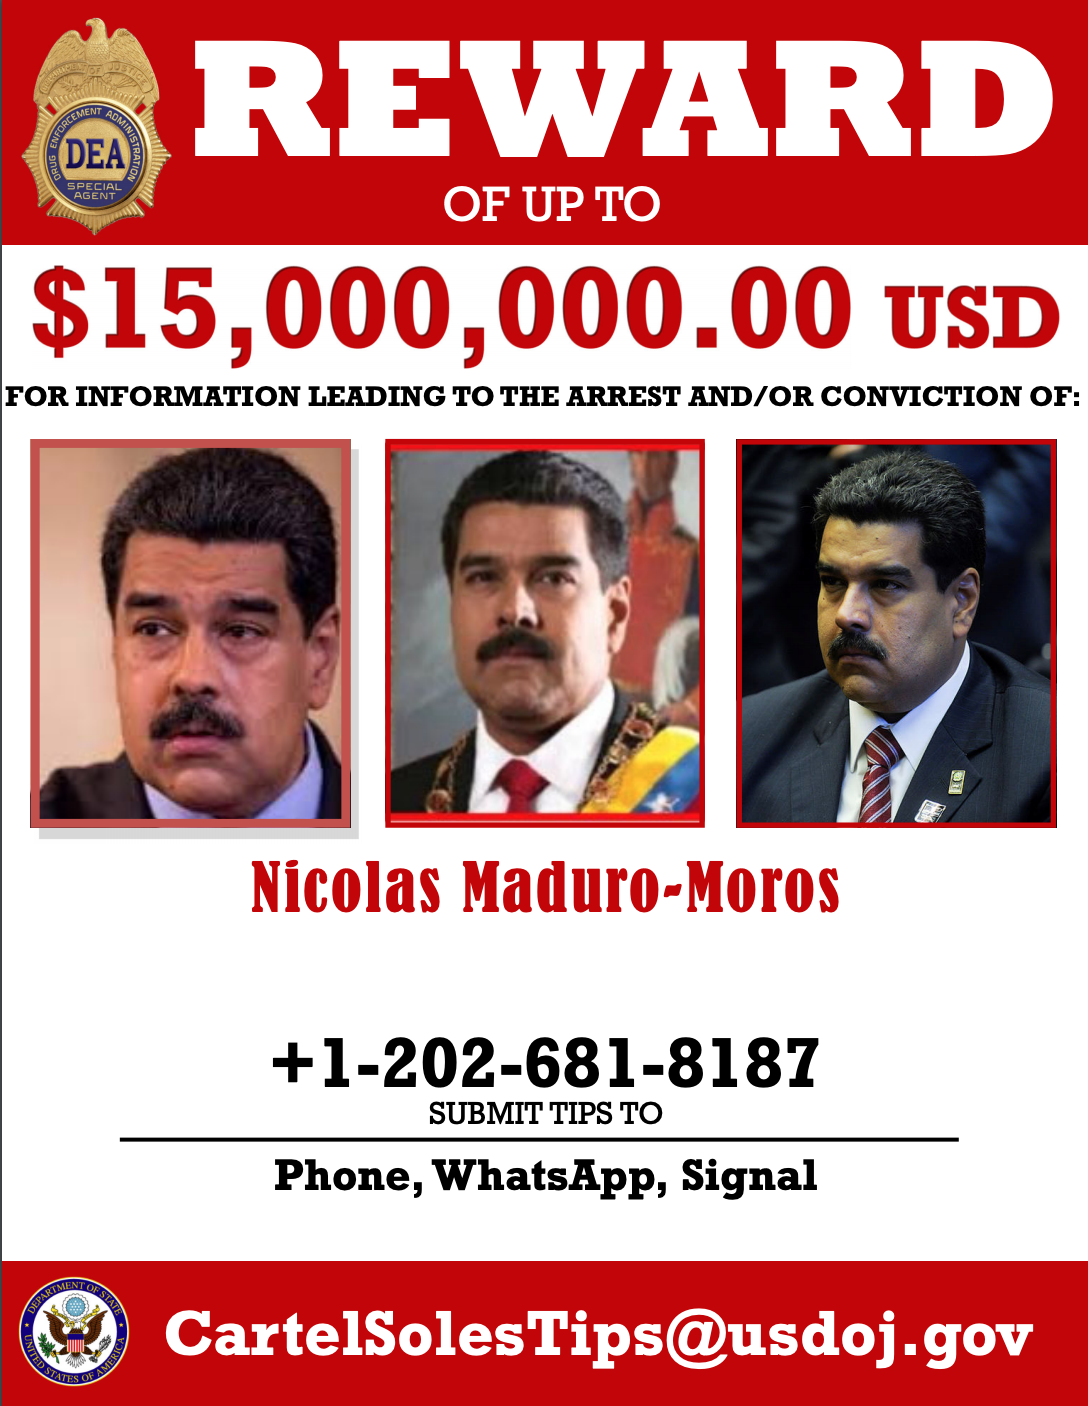 President of Venezuela indicted for narcoterrorism in the U.S., Venezuelans are 'not surprised'